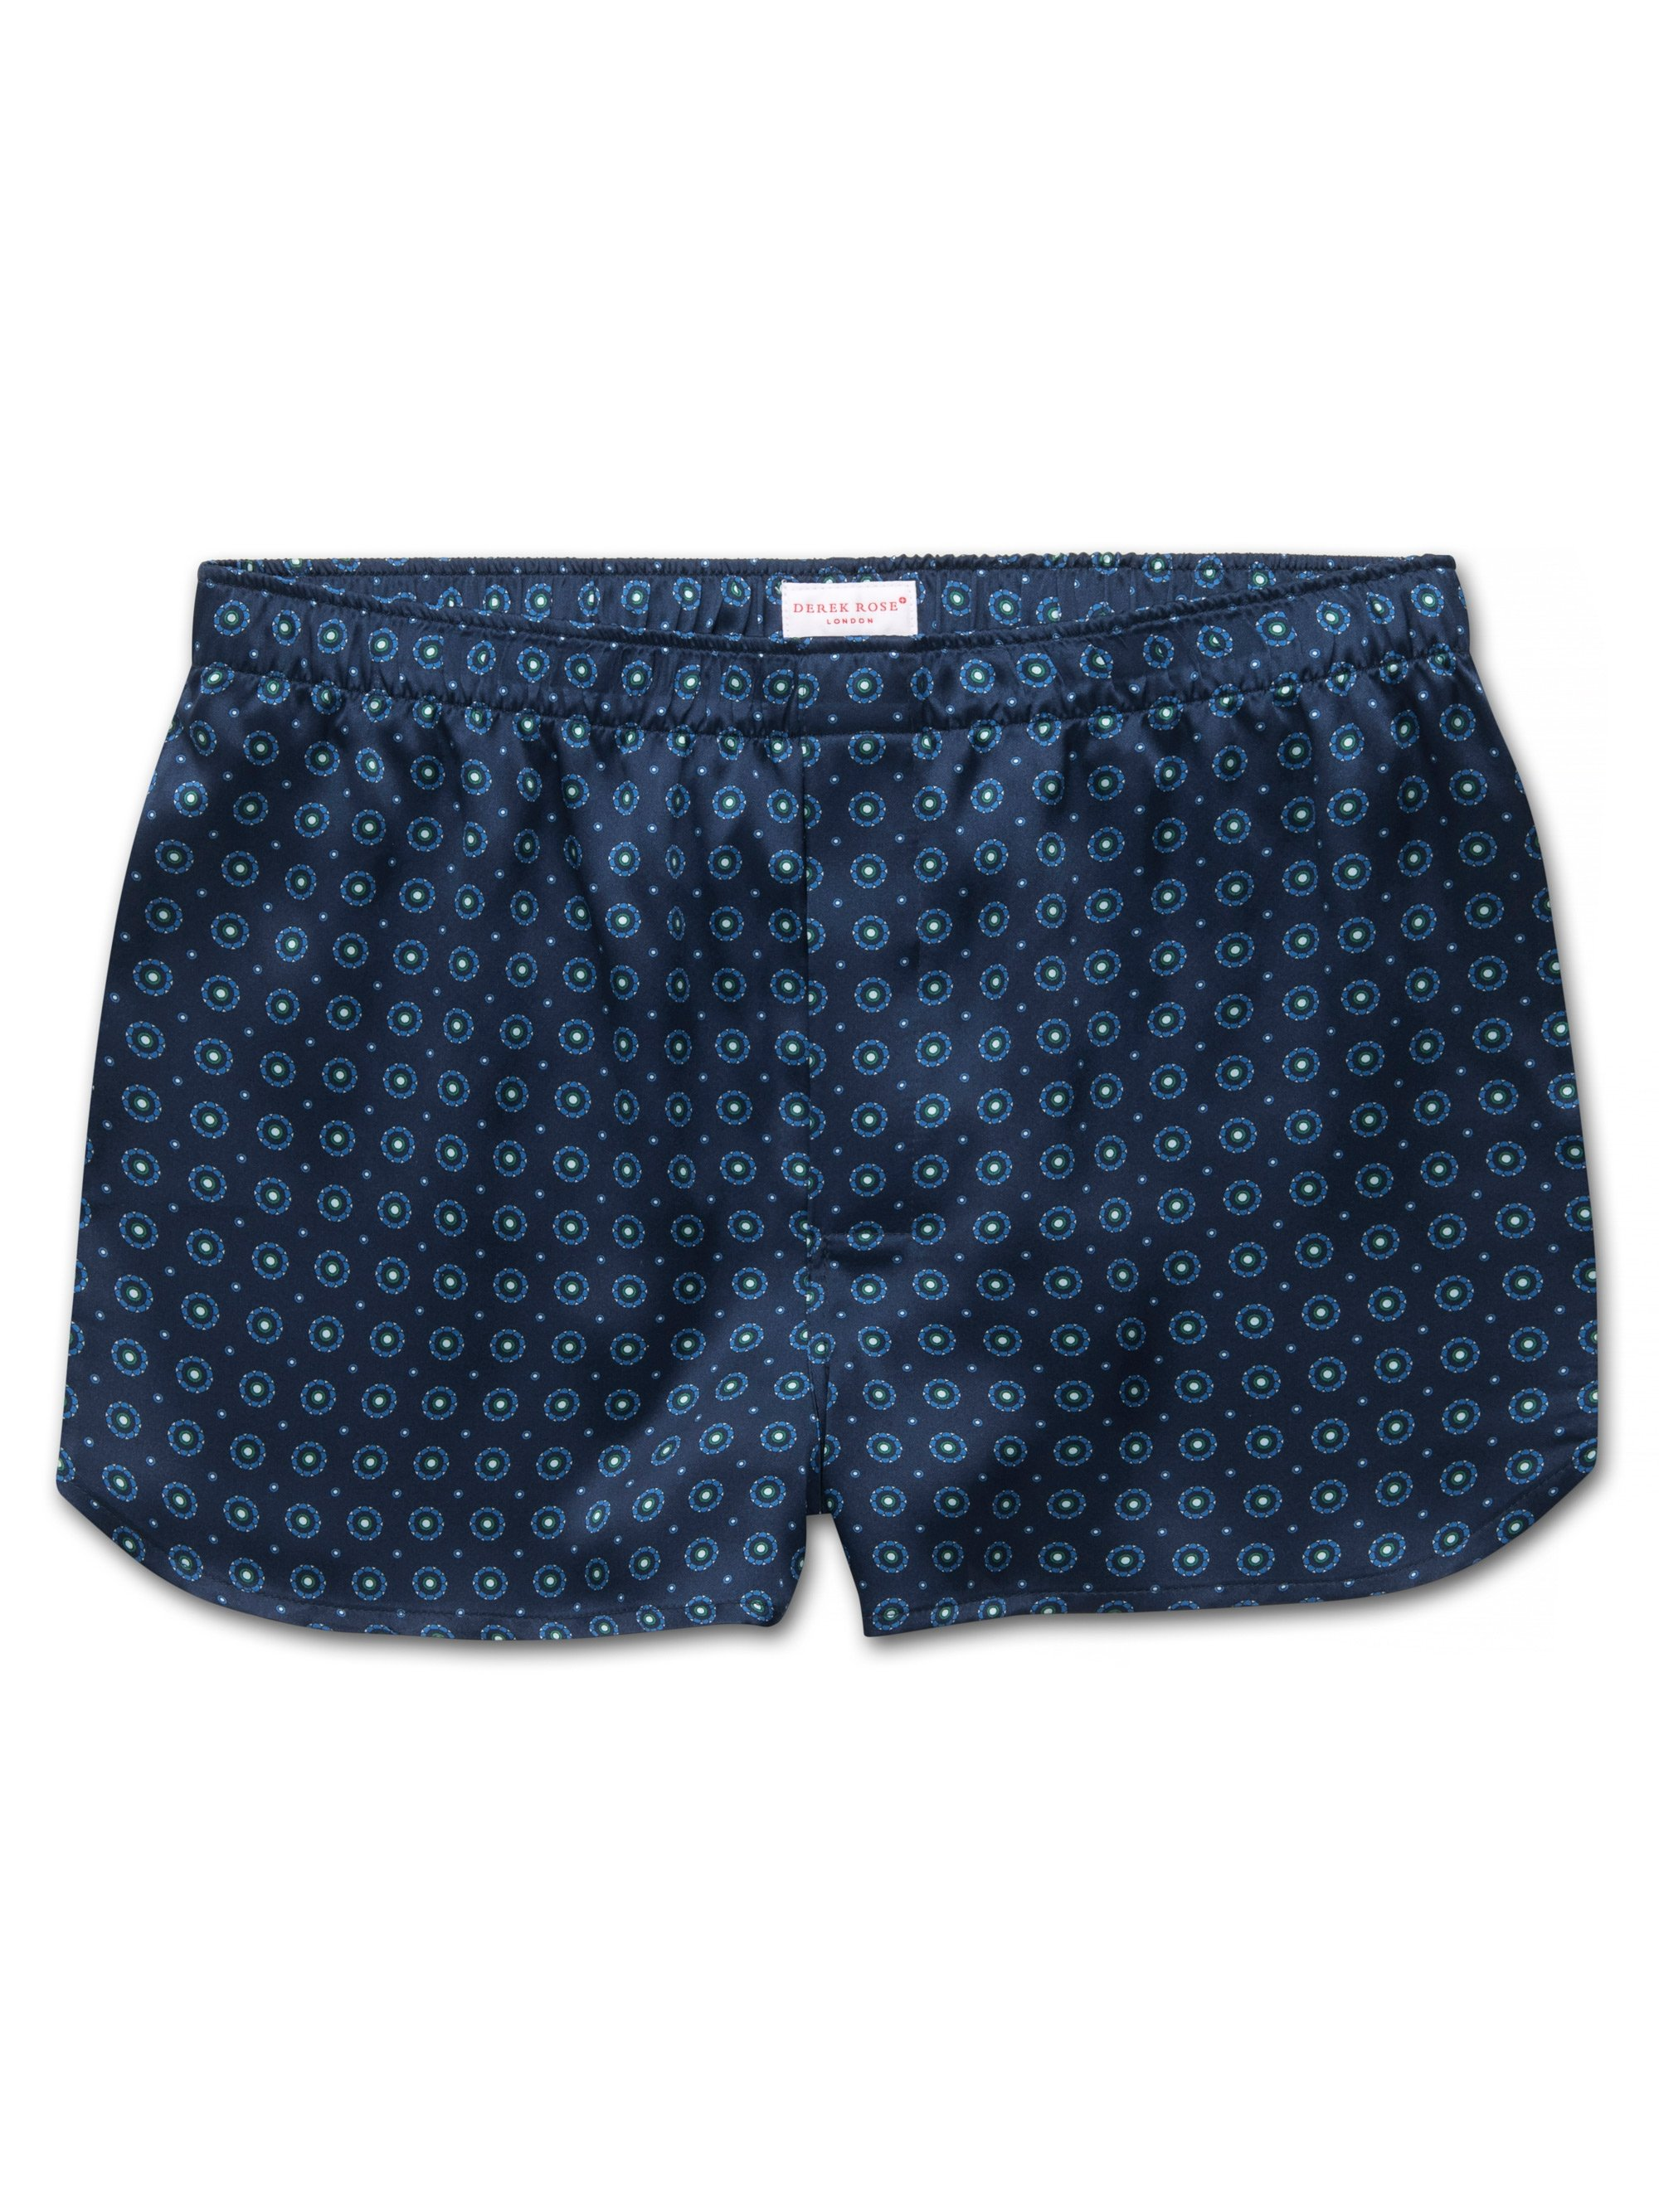 Men's Modern Fit Boxer Shorts Brindisi 52 Pure Silk Satin Navy